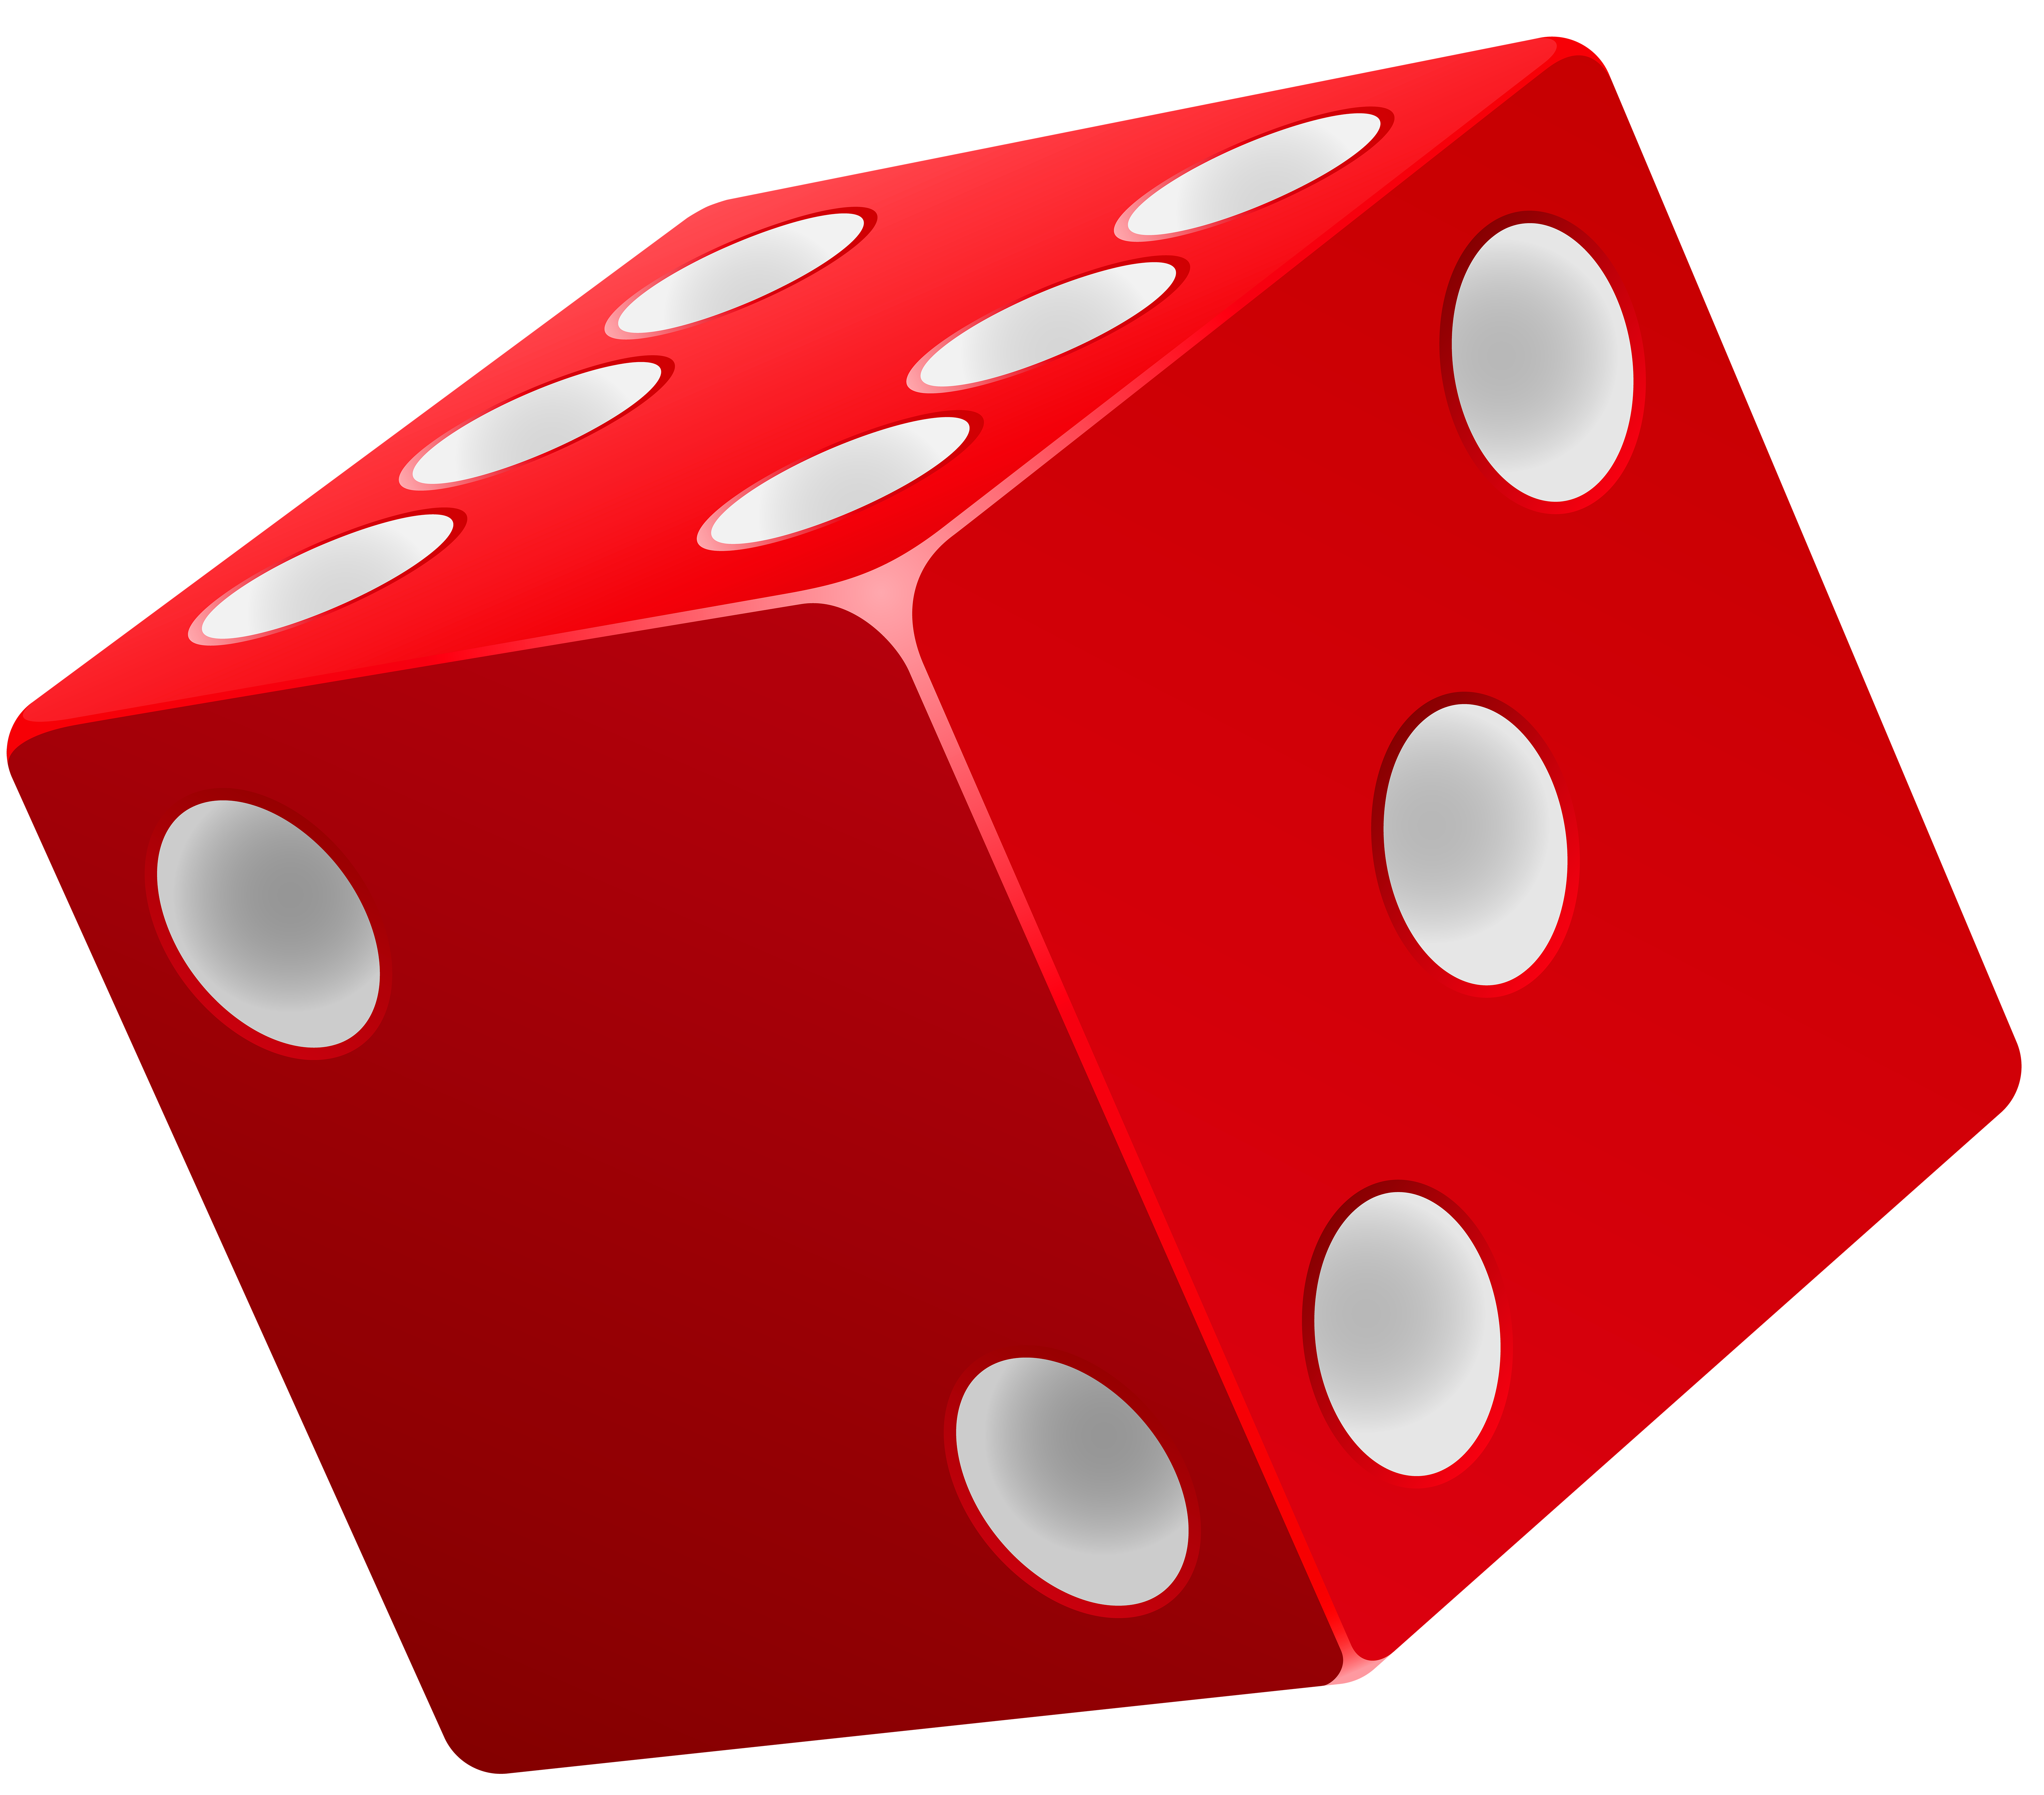 Red dice png. Clip art best web